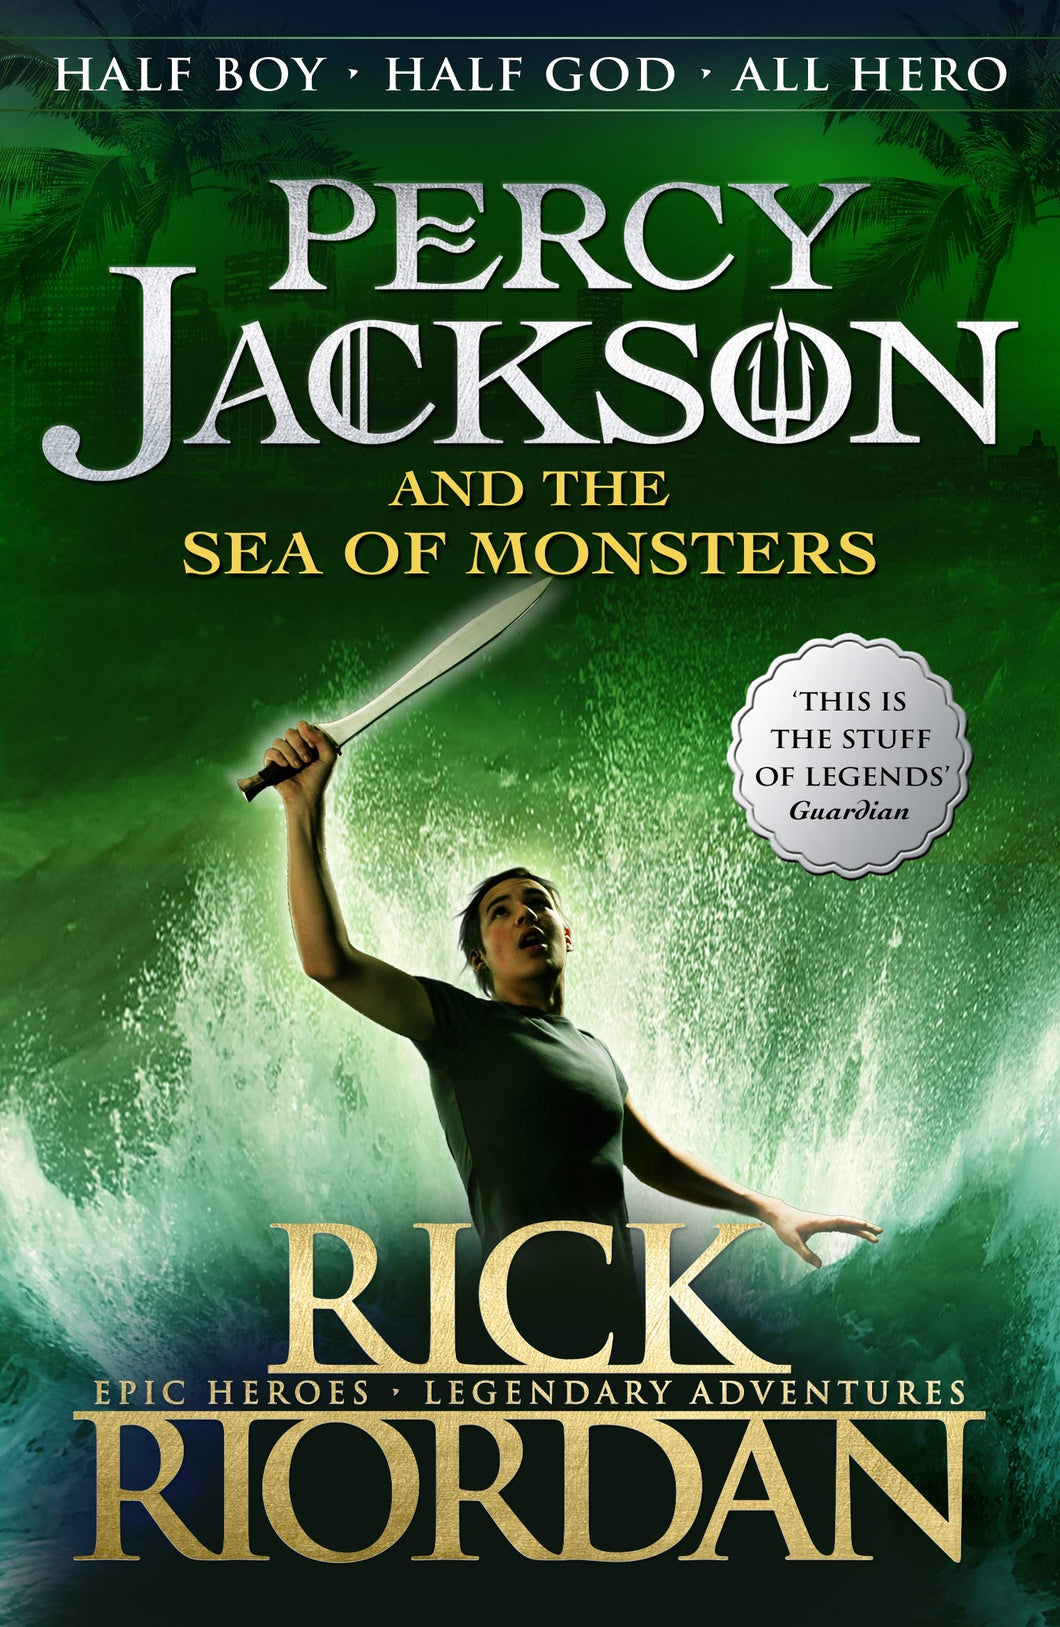 Percy Jackson and the Sea of Monsters (#2)